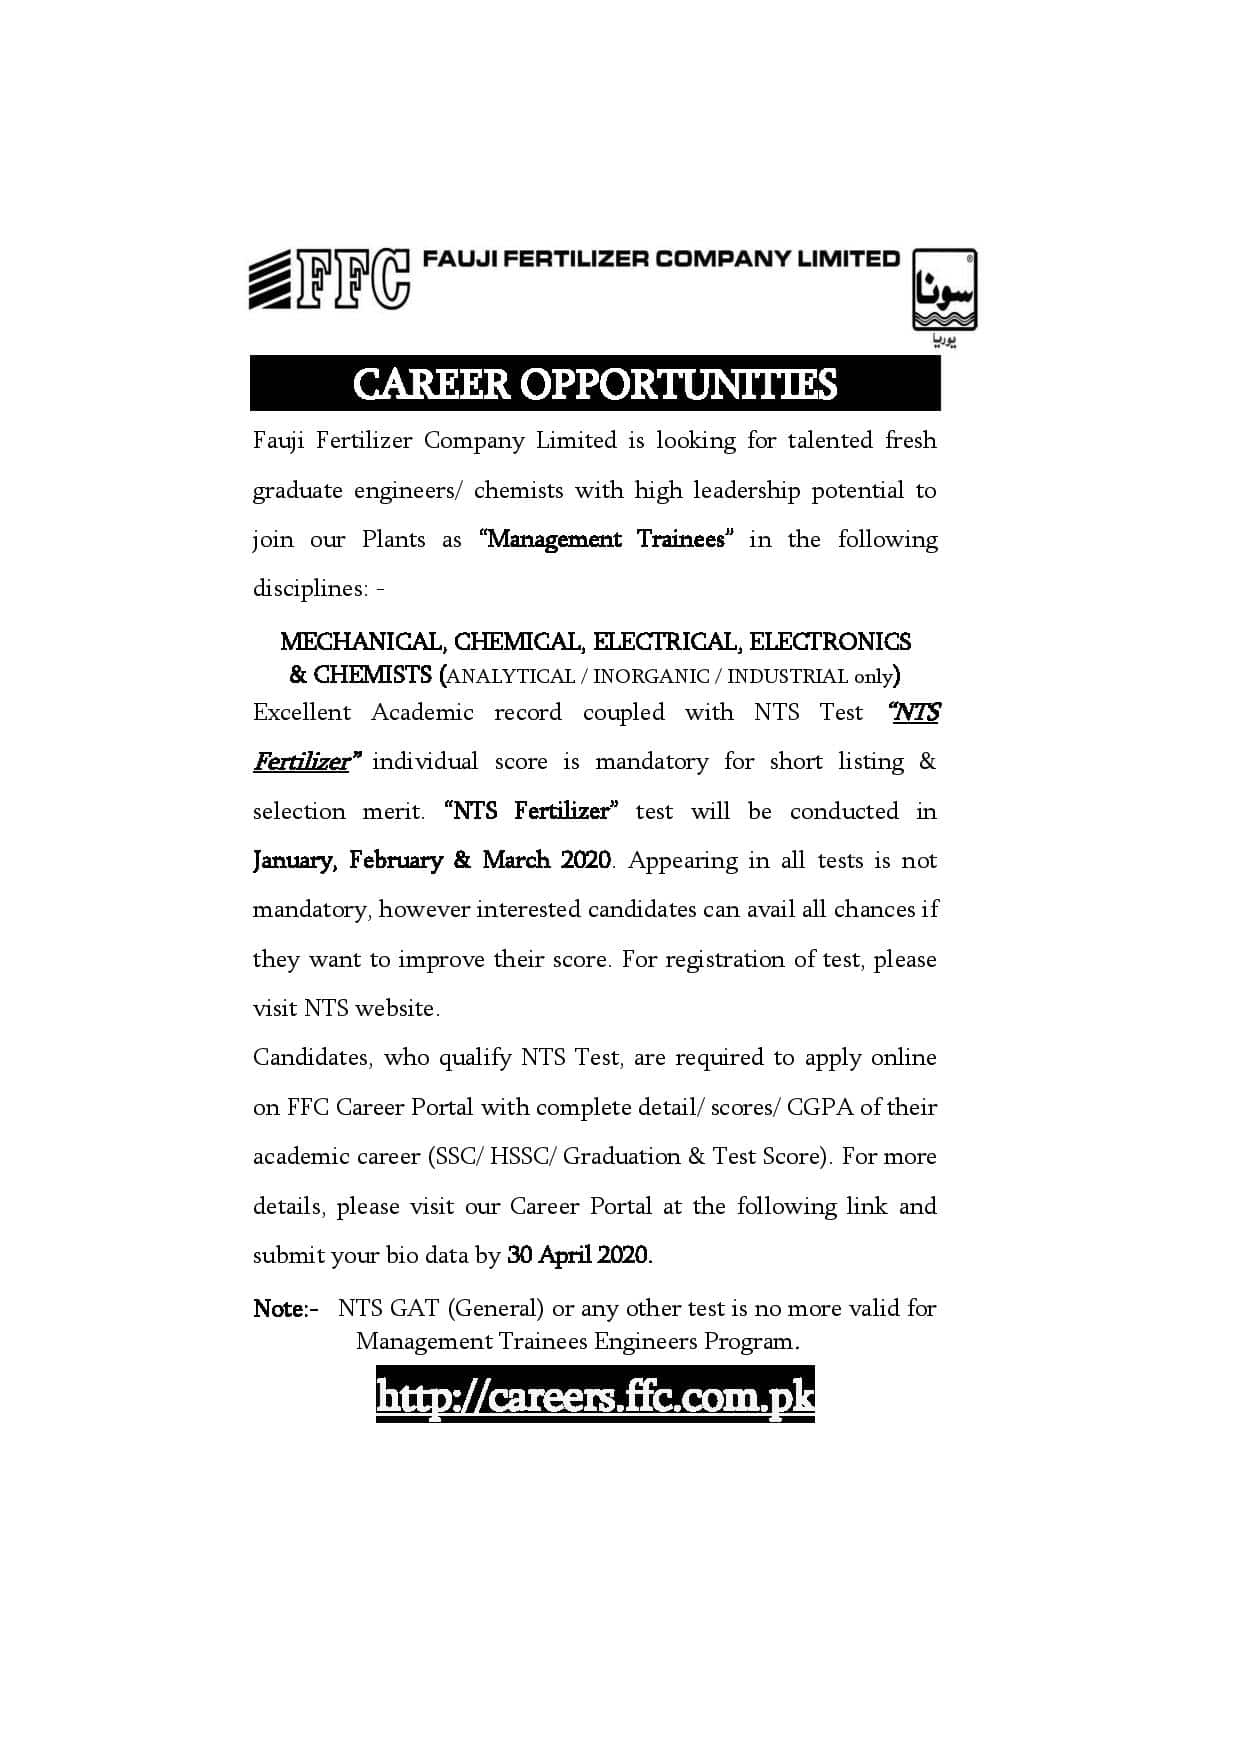 Fauji Fertilizer Company FFC Management Trainees Programs 2020 NTS Test Roll No Slip